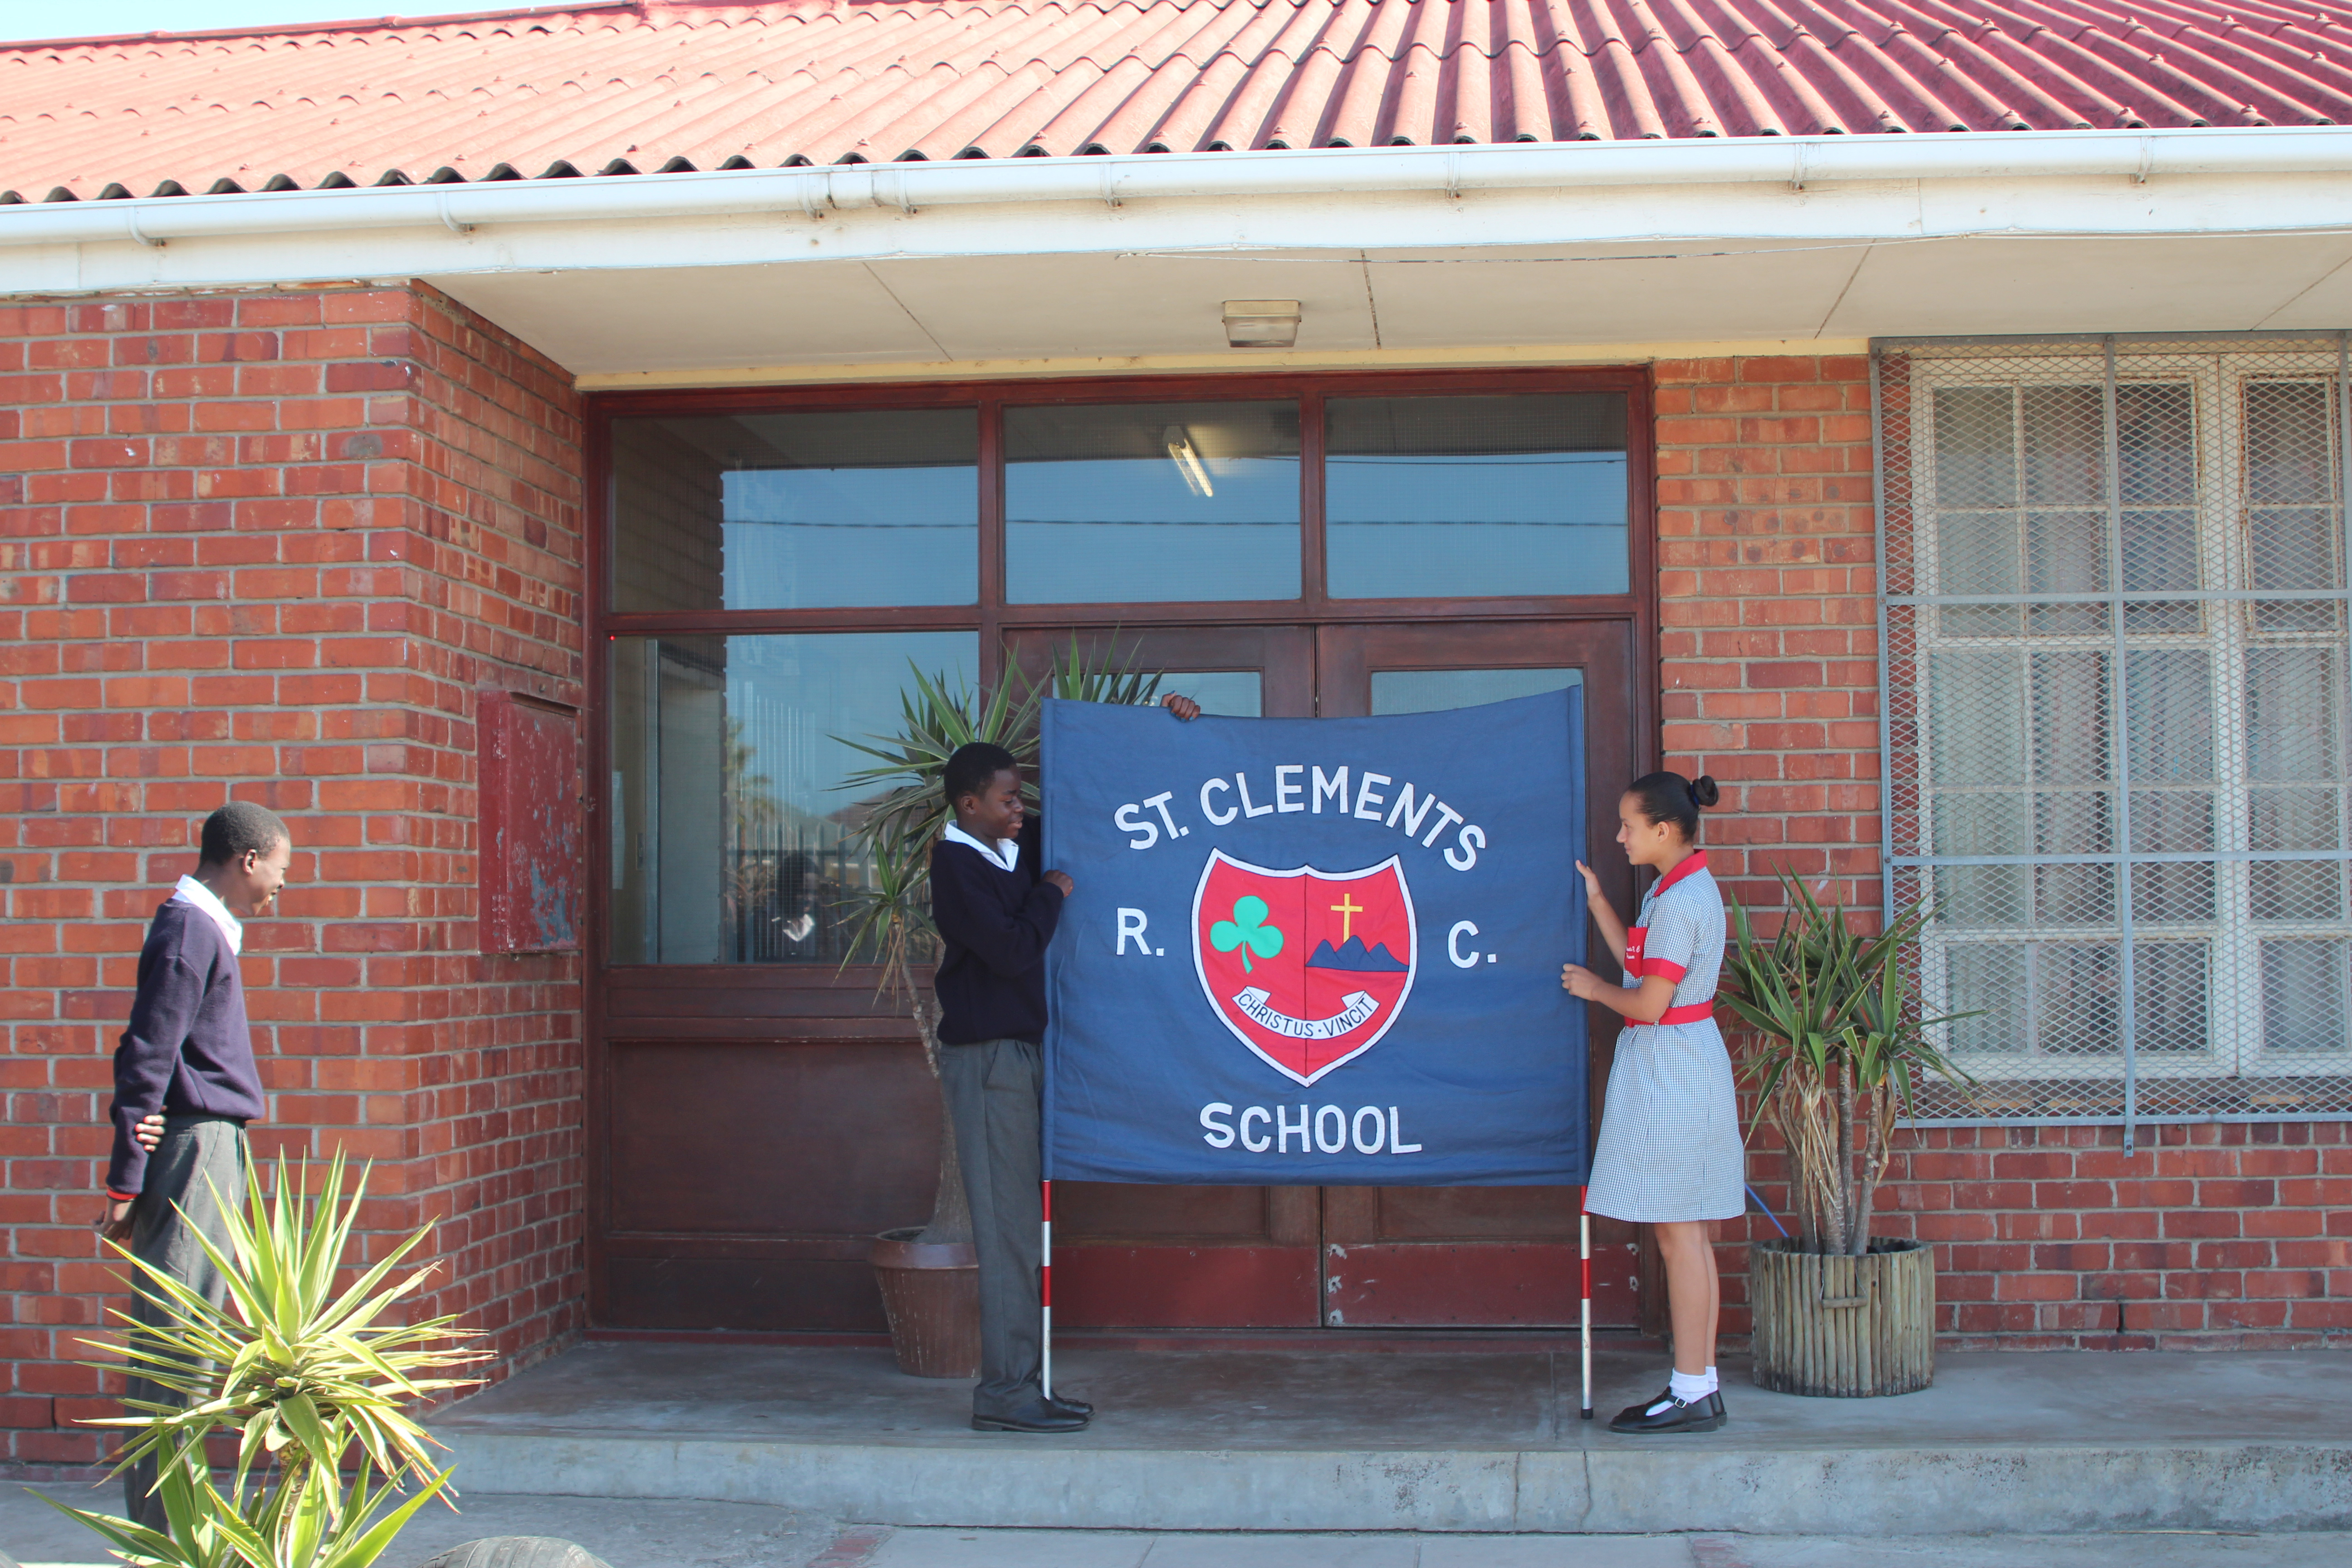 St Clements RC Primary School